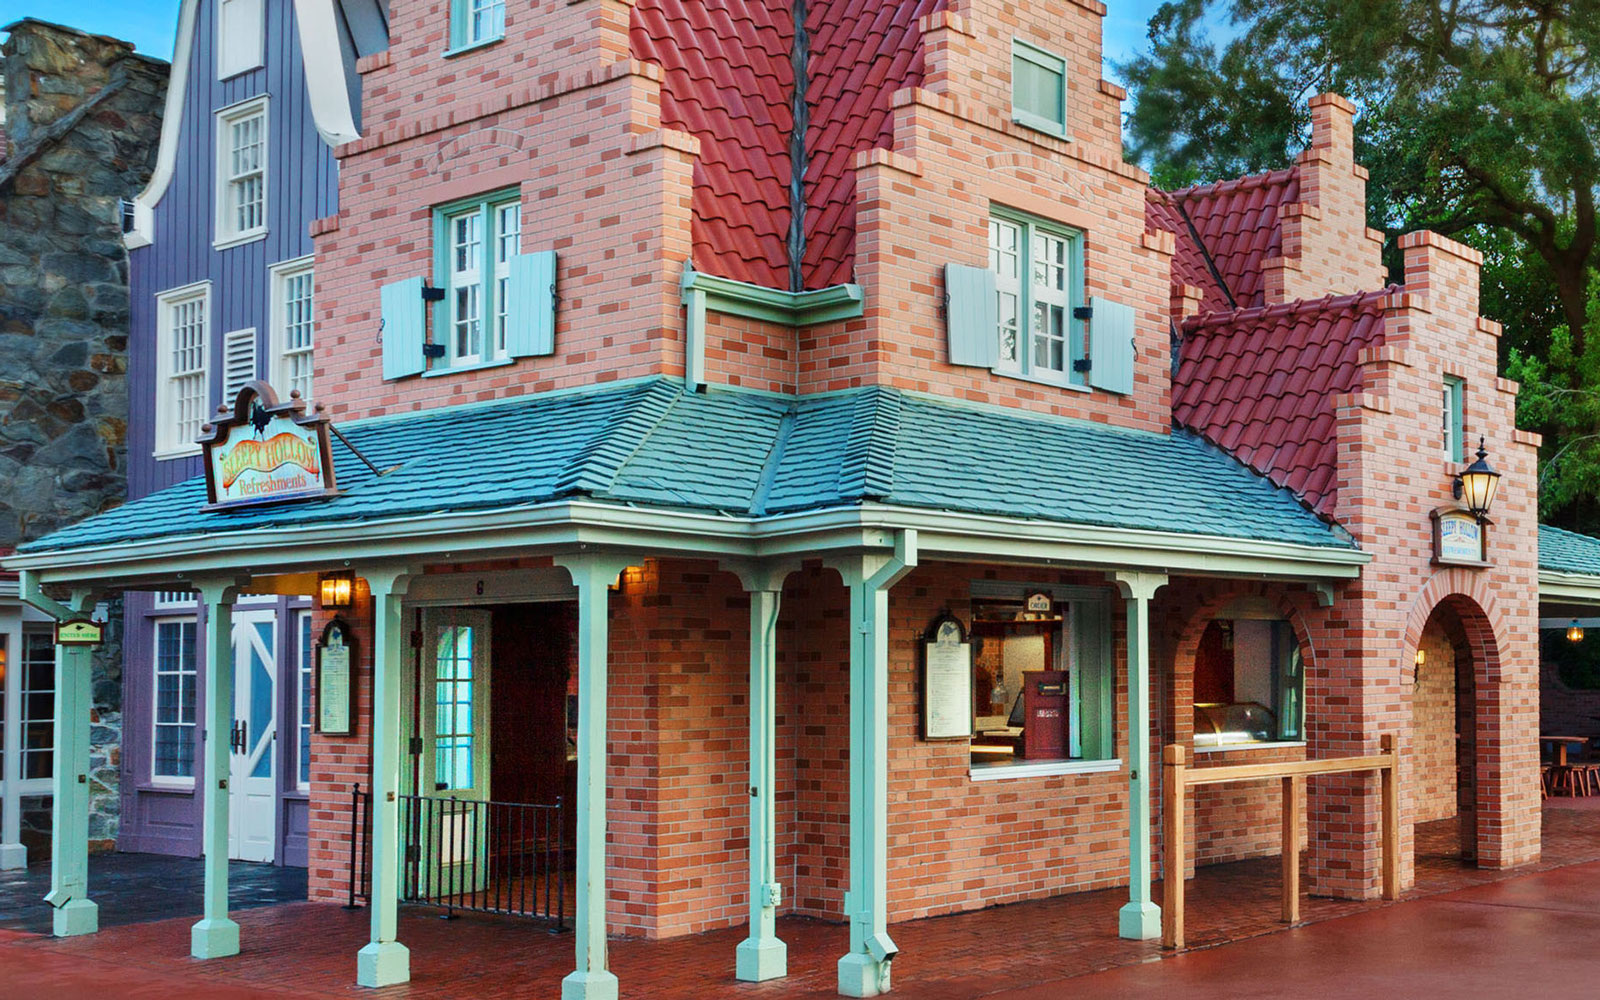 Sleepy Hollow restaurant at Magic Kingdom, FL